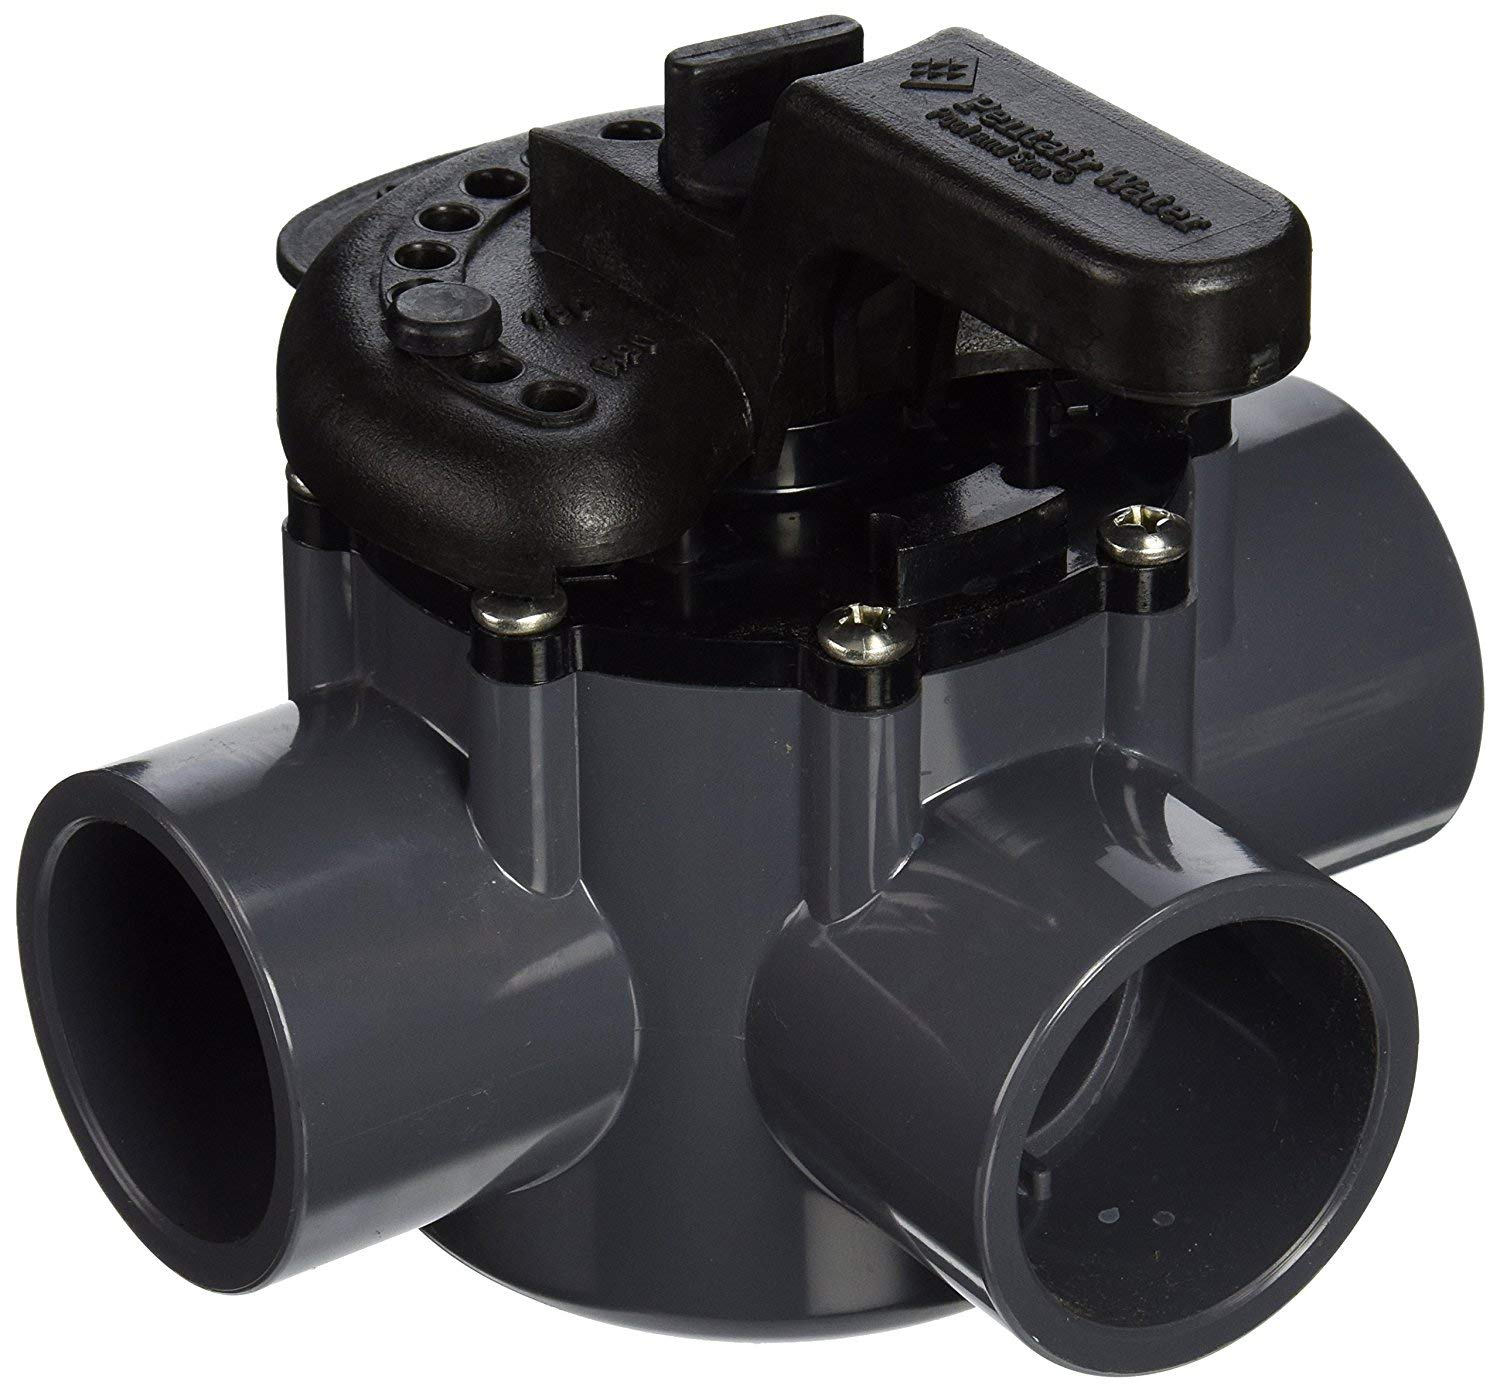 amazon com: pentair 263037 3-way pvc 1-1/2 inch (2 inch slip outside) pool  and spa diverter valve: garden & outdoor